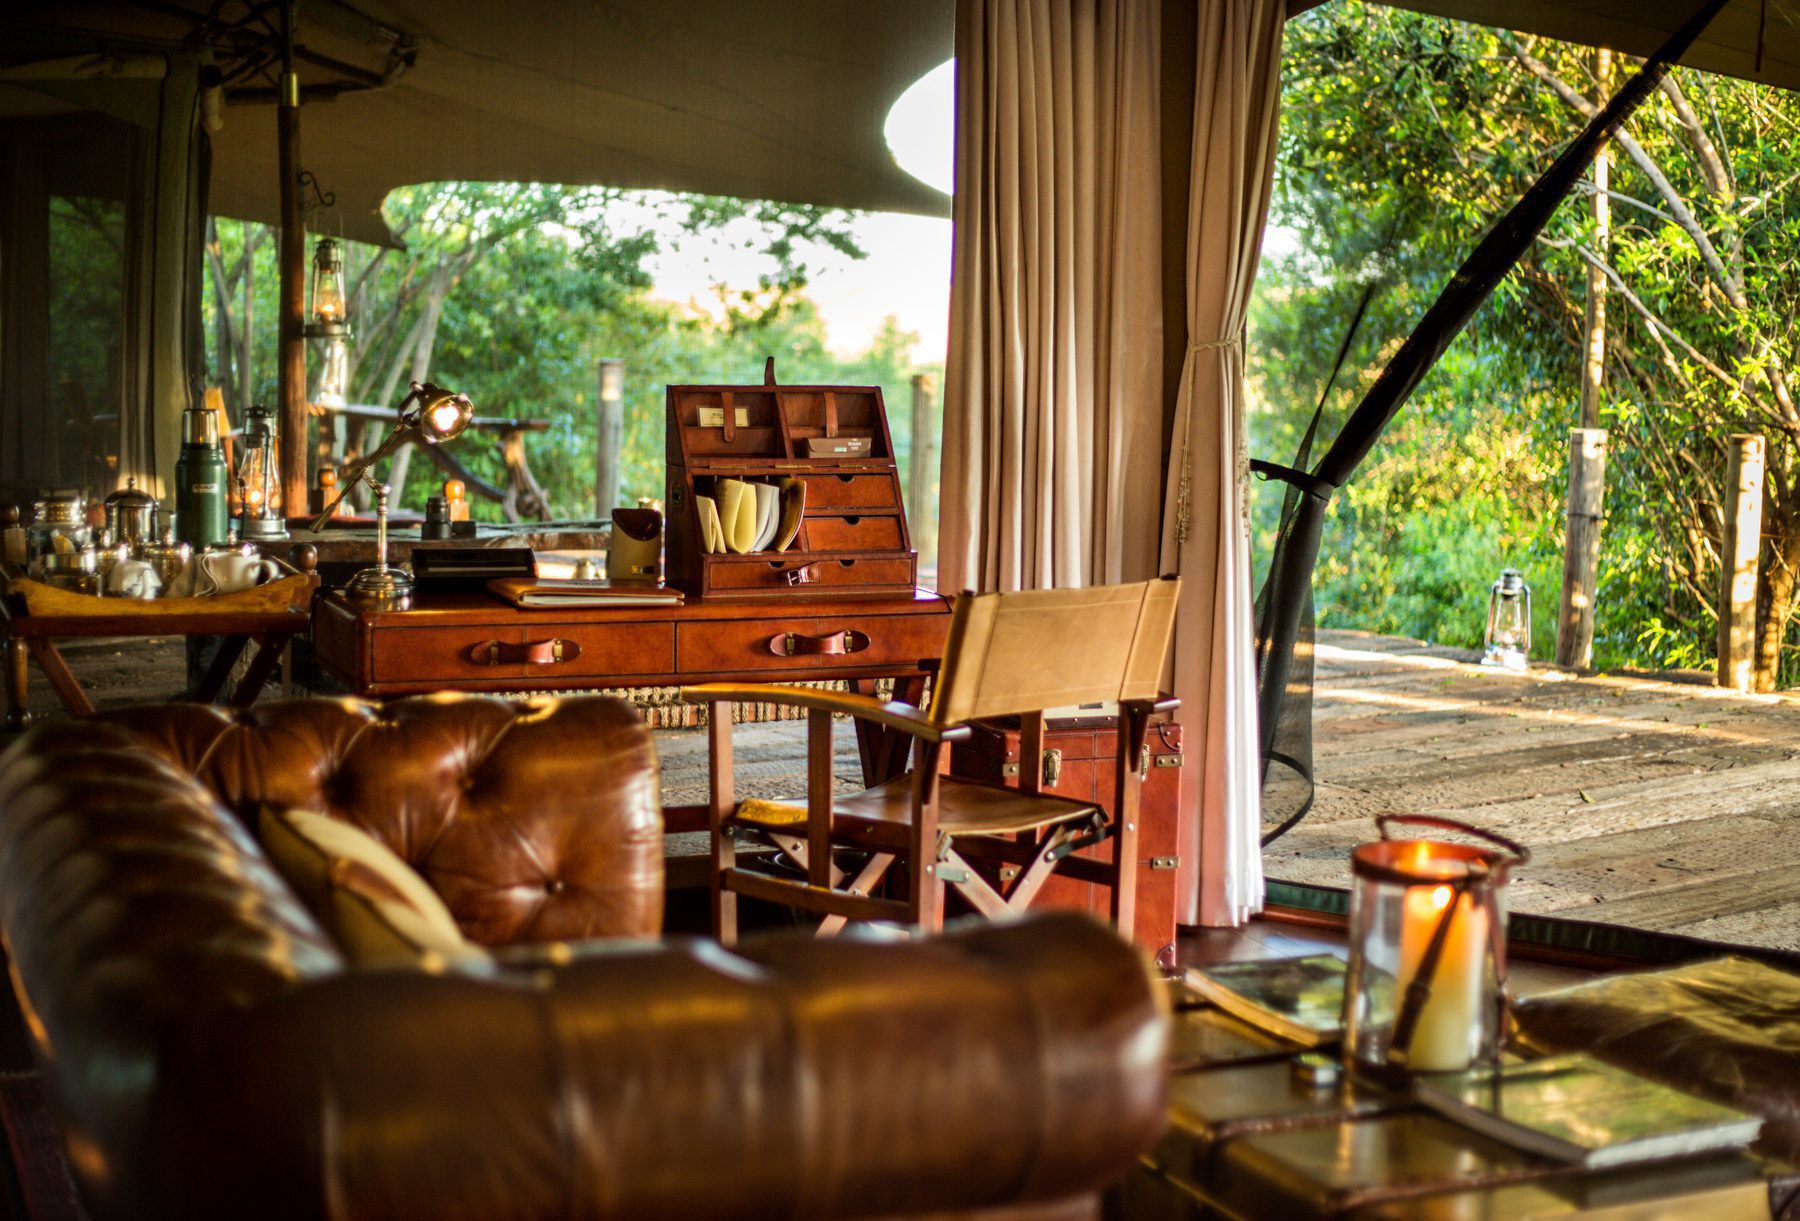 couch and vintage desk inside a tent at Mara Plains